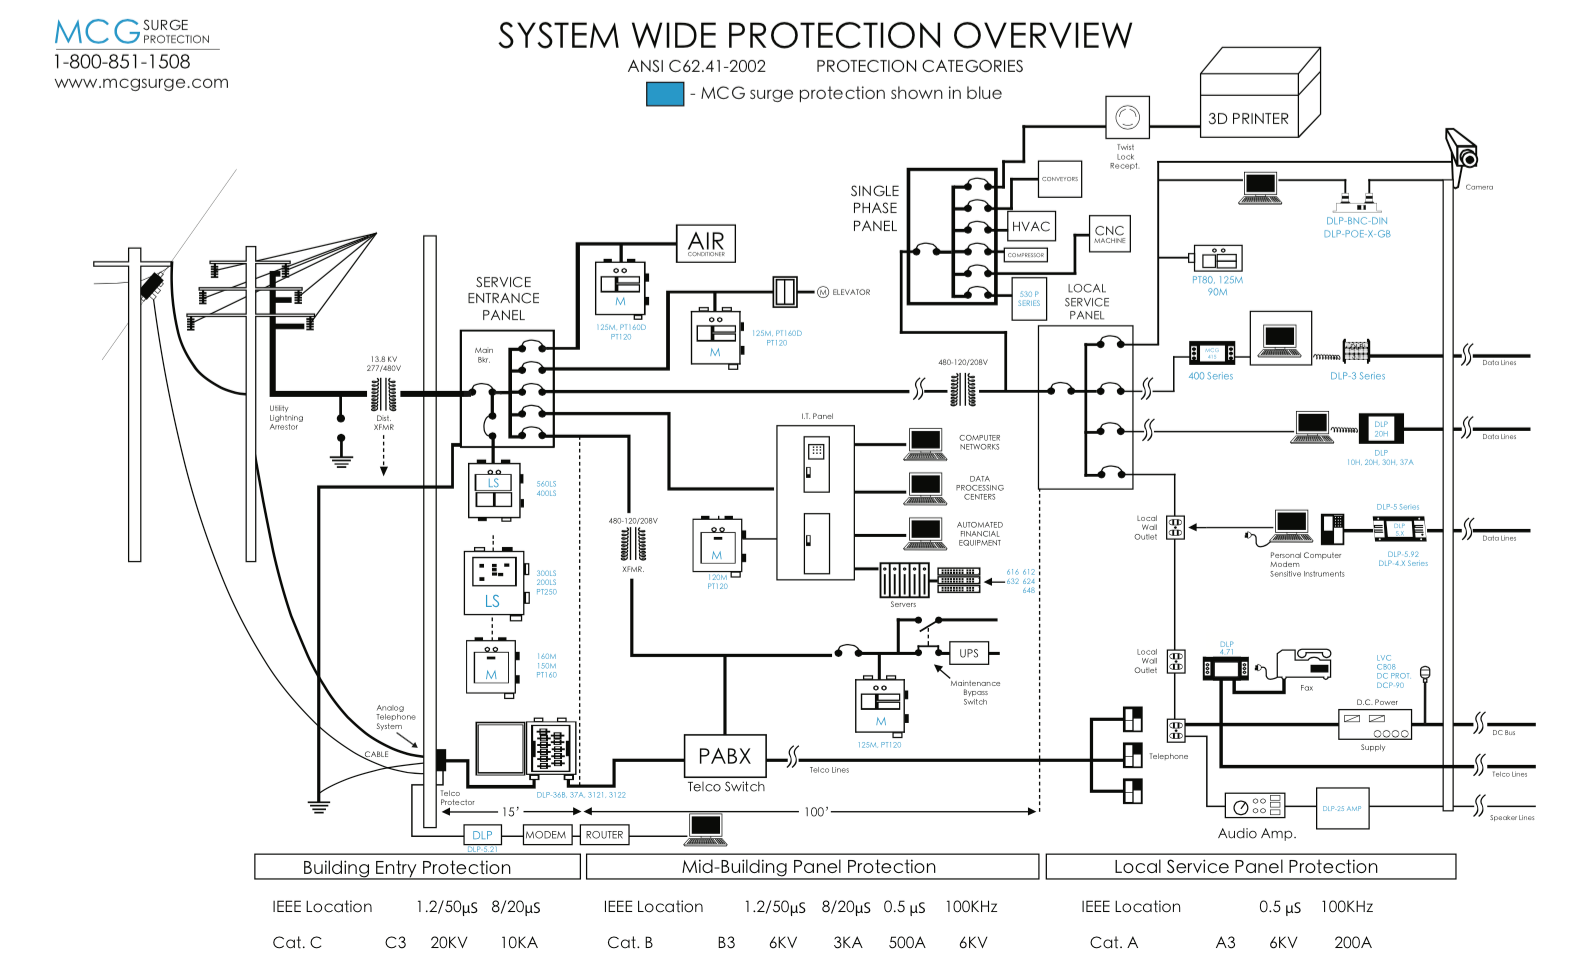 New: System Wide Protection Overview Diagram — MCG Surge